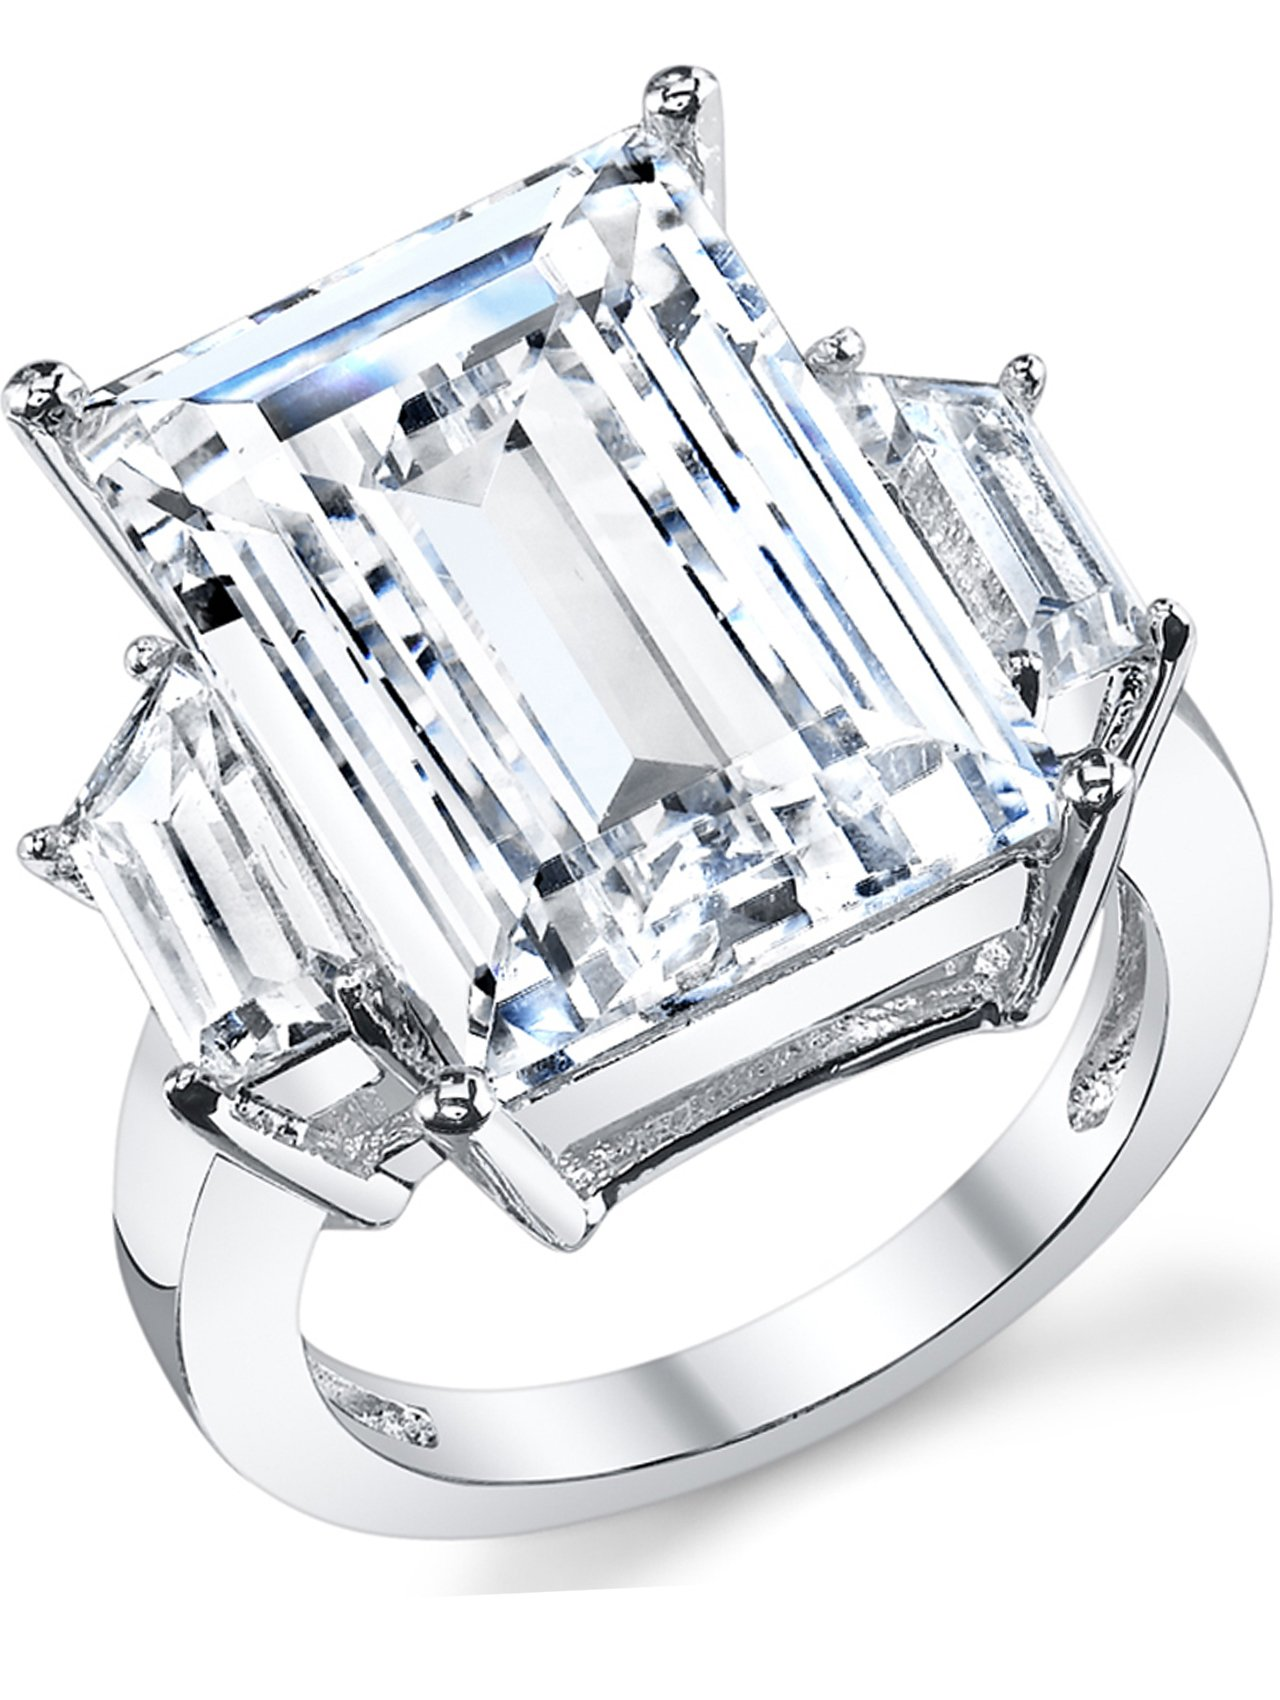 Kim Kardashian Sterling Silver Engagement Wedding Ring with Large Carat Emerald Cut Cubic Zirconia CZ 7